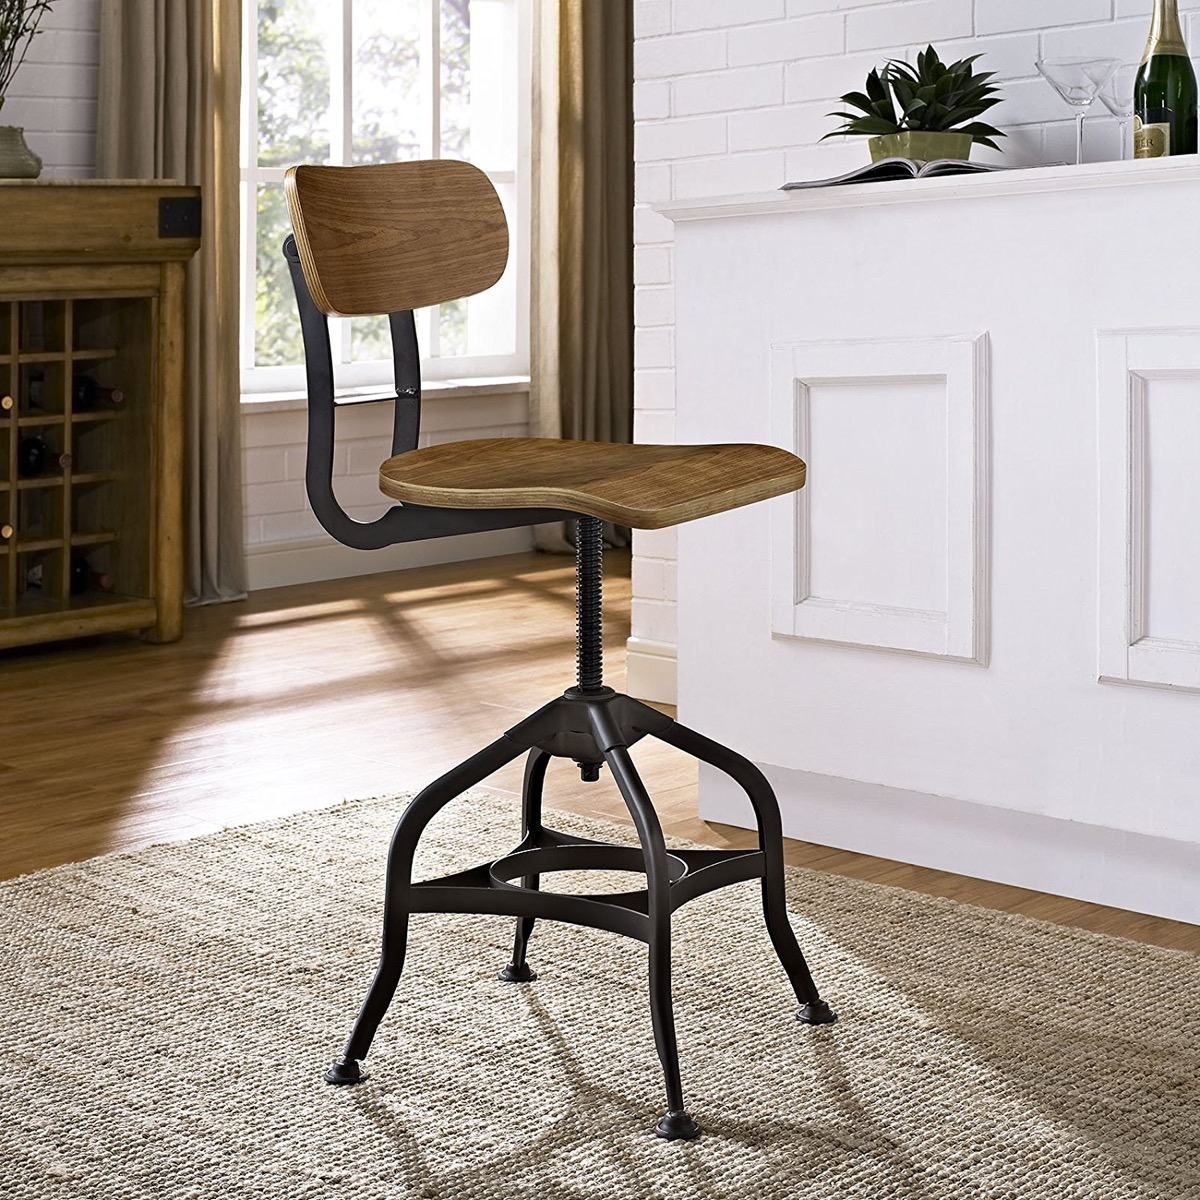 schoolhouse-vintage-inspired-bar-stool